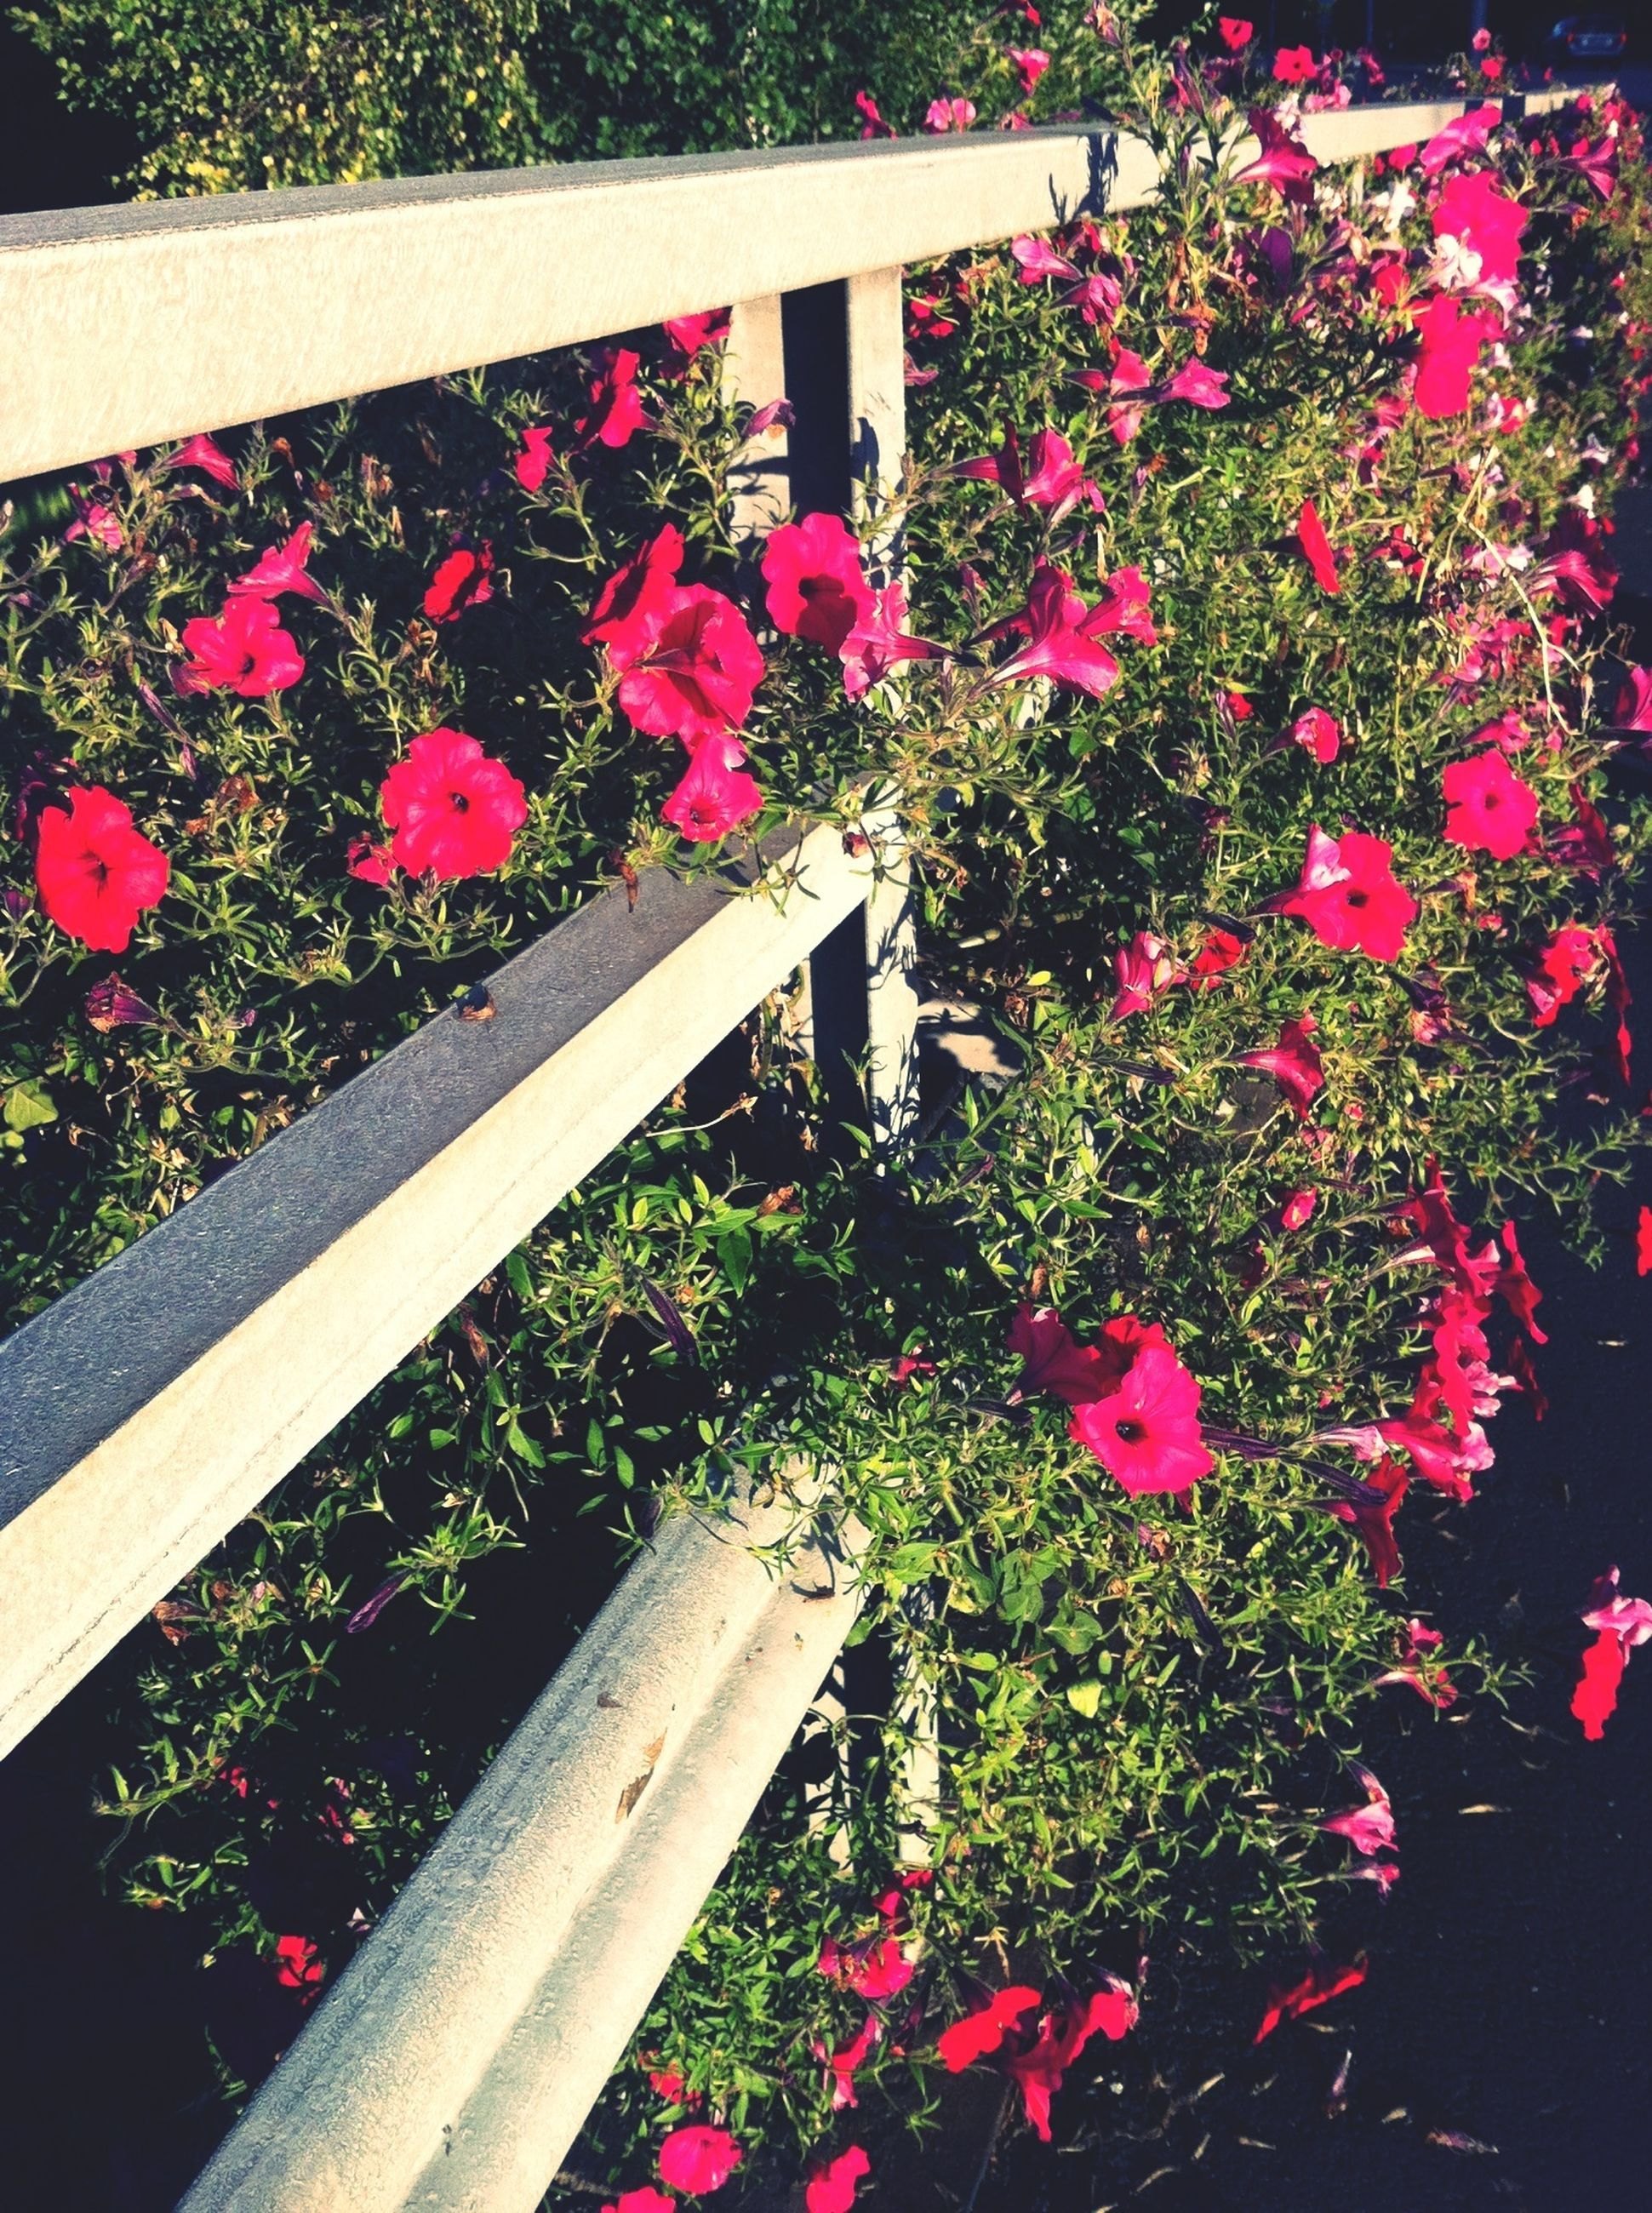 flower, freshness, growth, plant, pink color, fragility, beauty in nature, petal, nature, high angle view, blooming, in bloom, sunlight, wood - material, railing, day, park - man made space, blossom, no people, outdoors